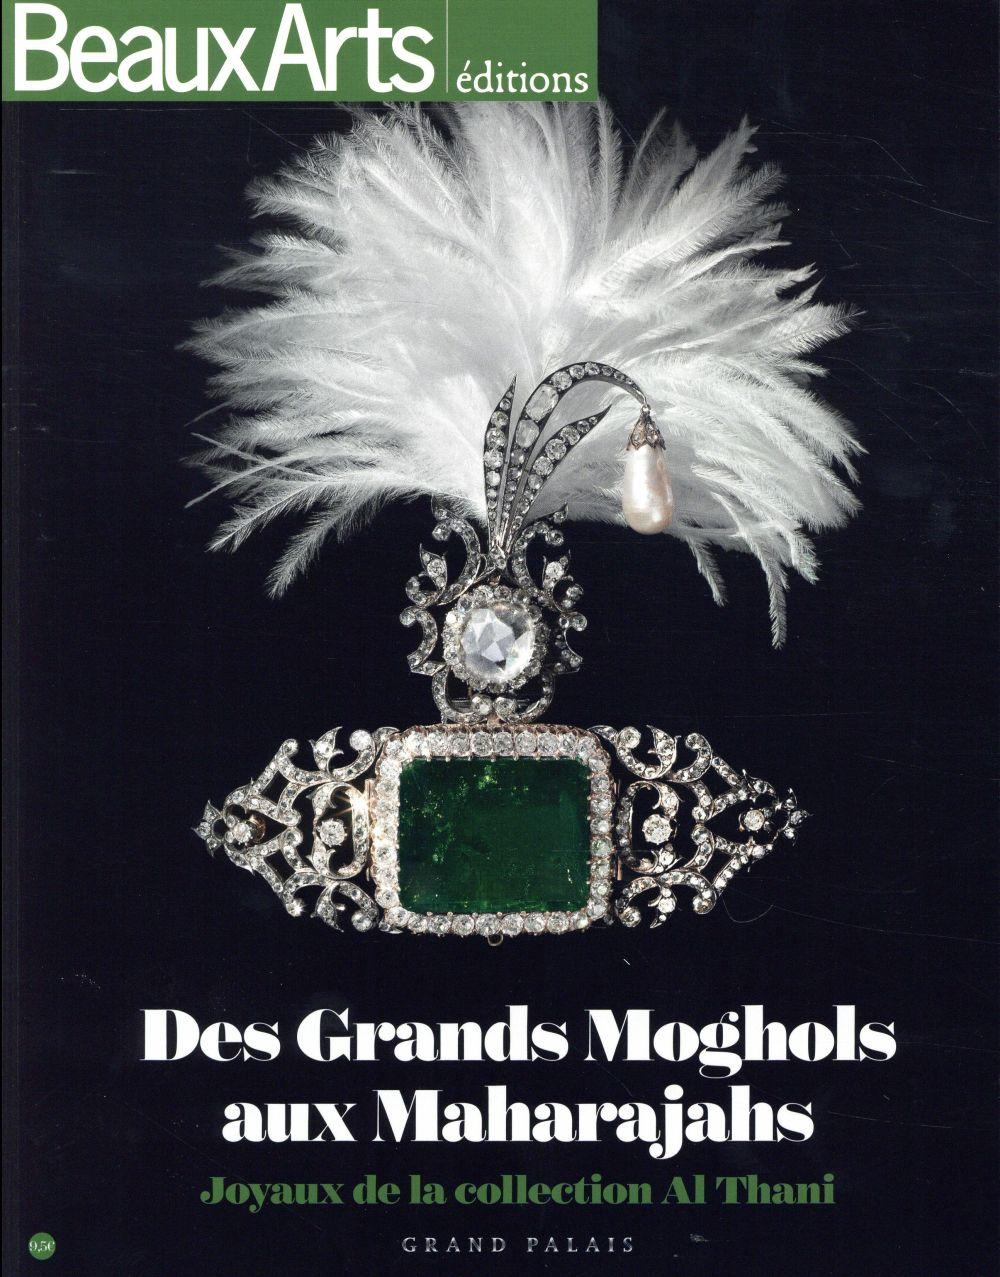 BEAUX ARTS MAGAZINE ; des Grands Moghols aux Maharajahs ; joyaux de la collection Al Thani, Grand Palais  - Collectif